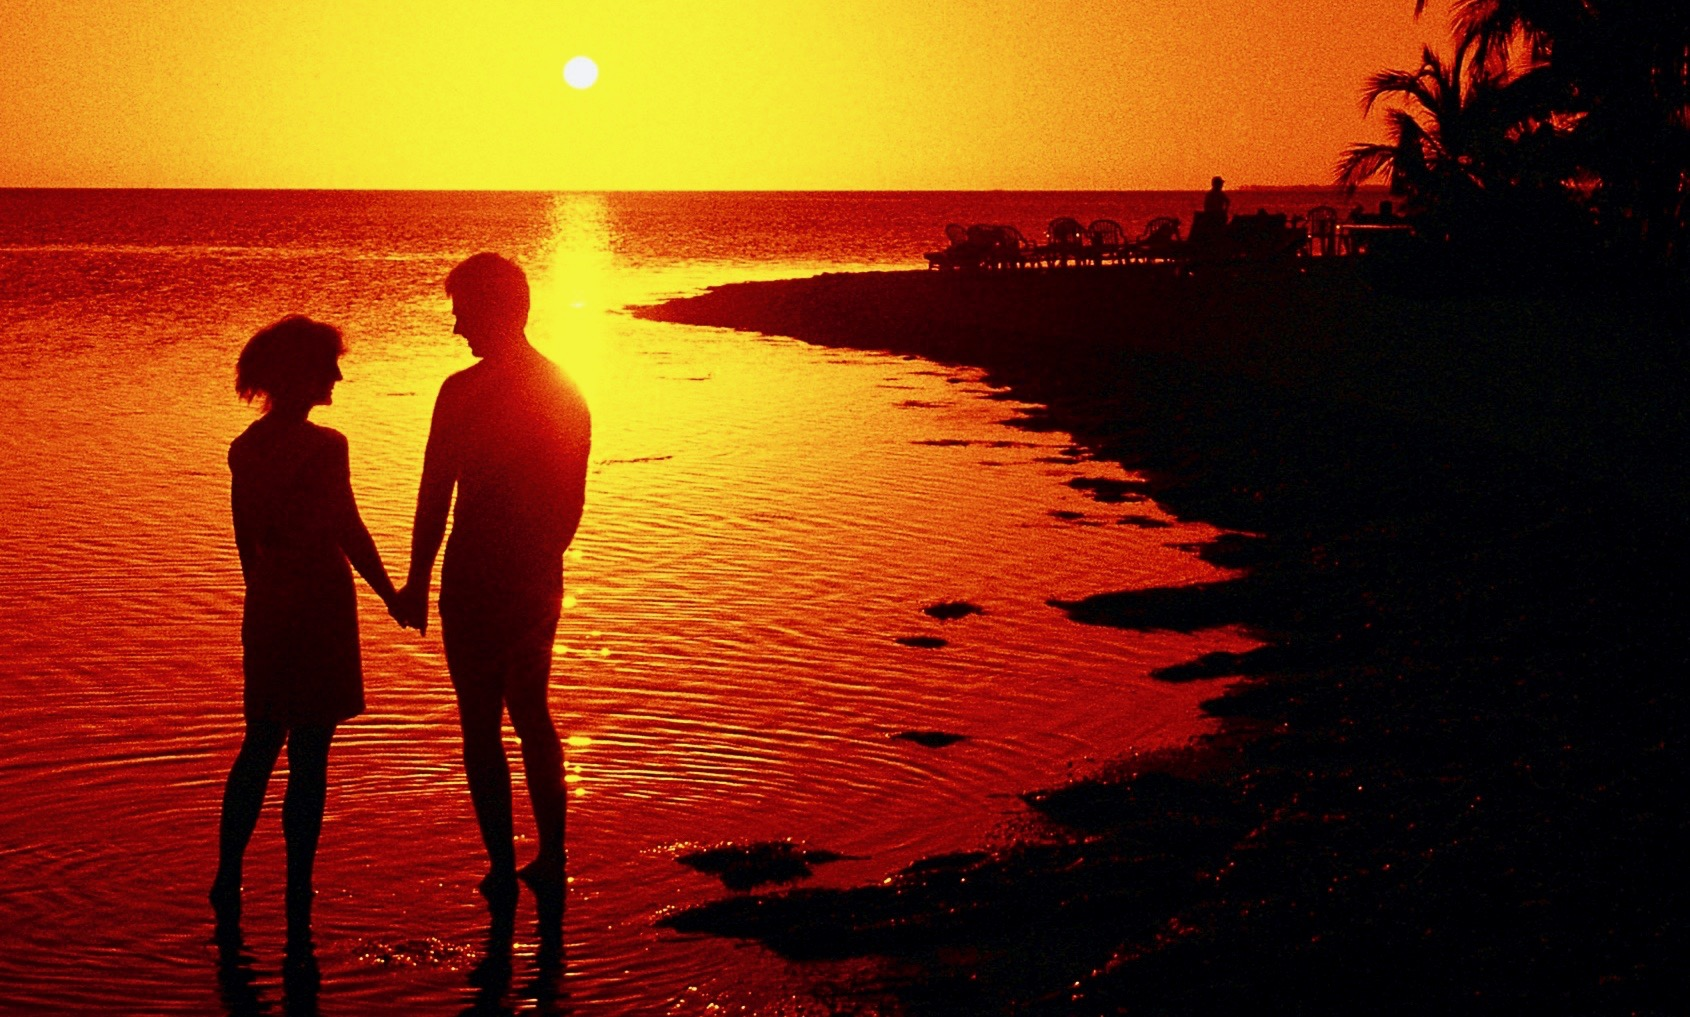 Silhouette of a man and woman holding hands on a beach at sunset